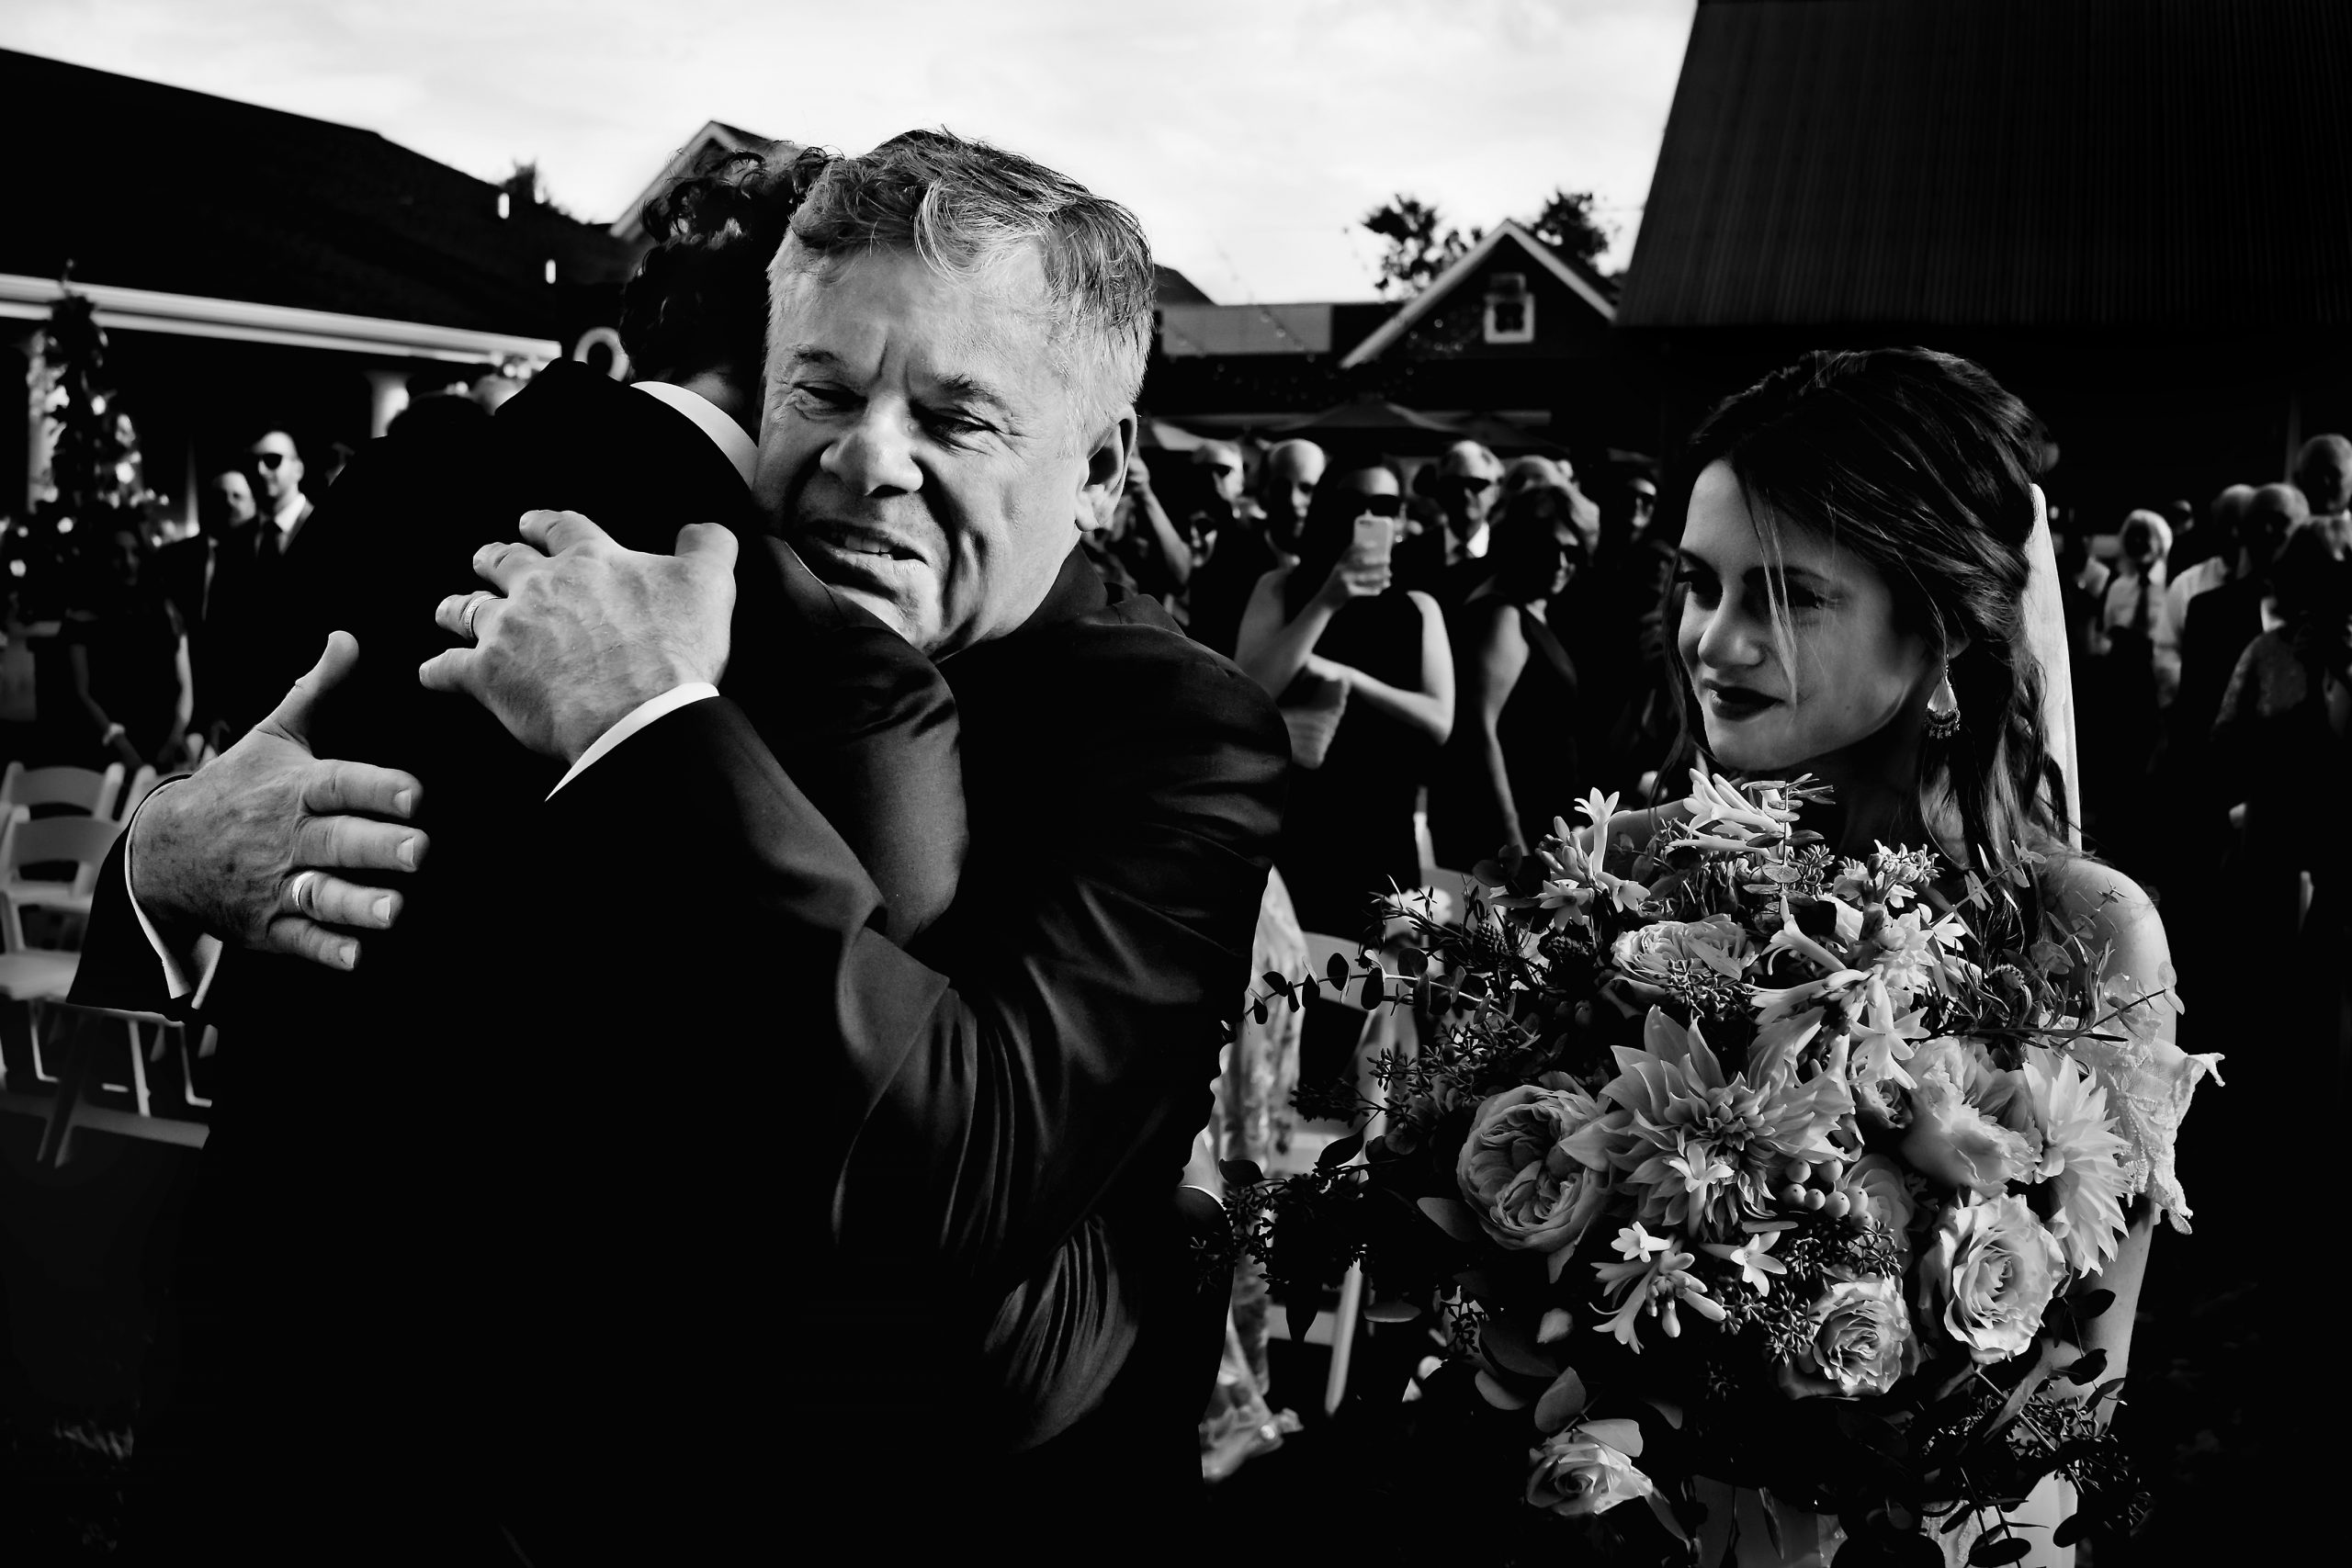 Bride's father hugs the groom at the wedding ceremony